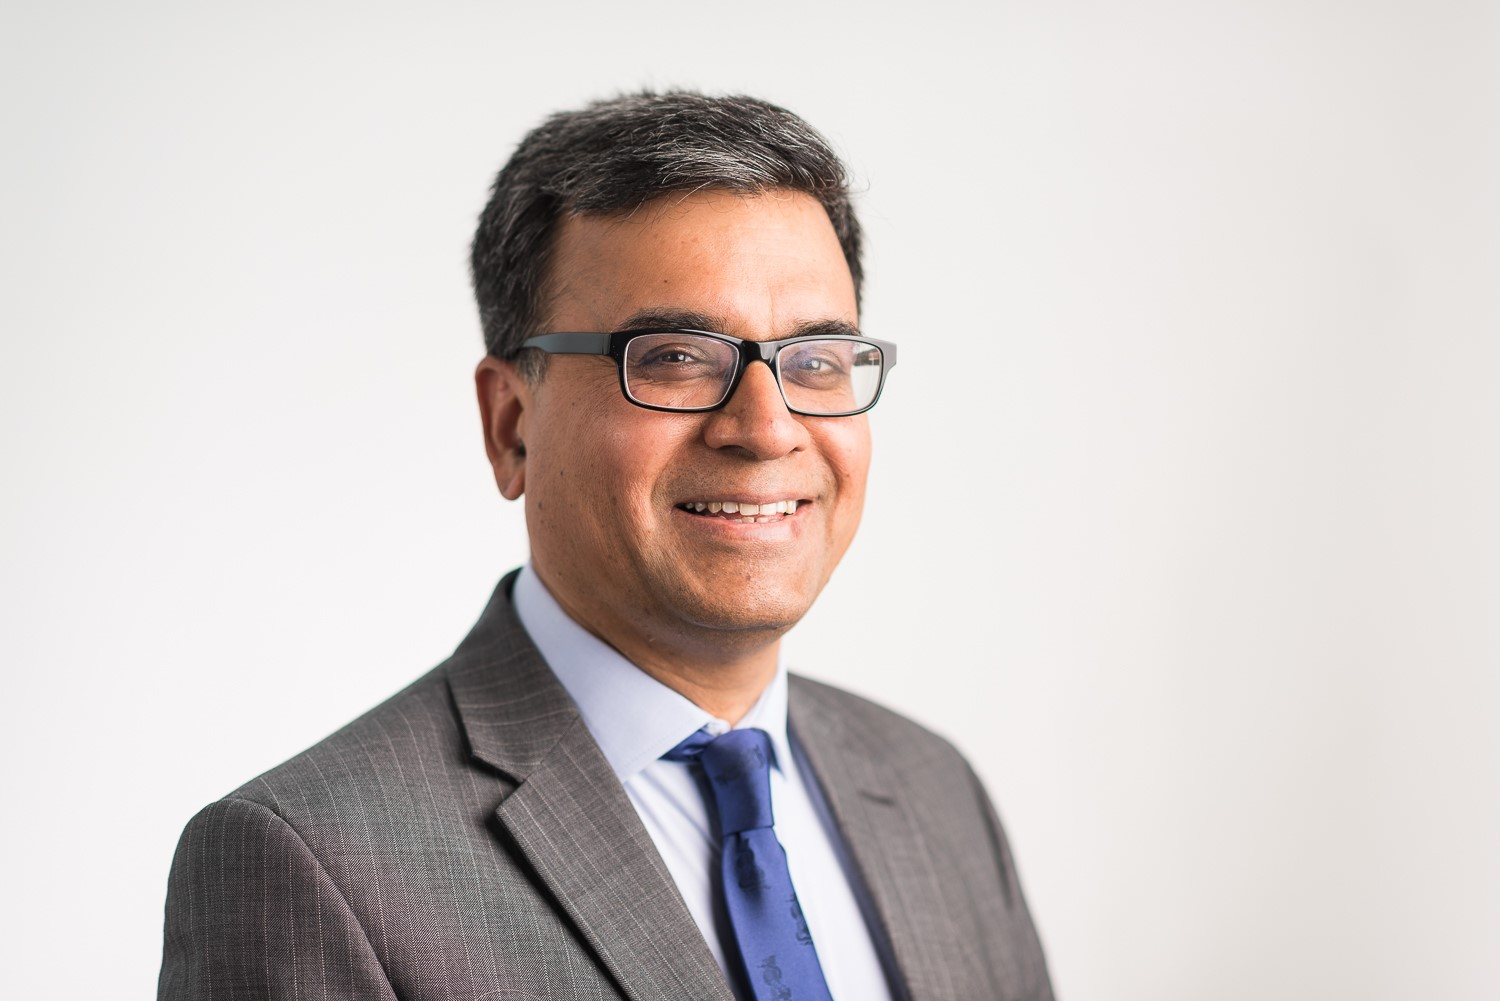 Paresh Kothari is a Consultant Trauma & Orthopaedic Surgeon  at Circle Nottingham